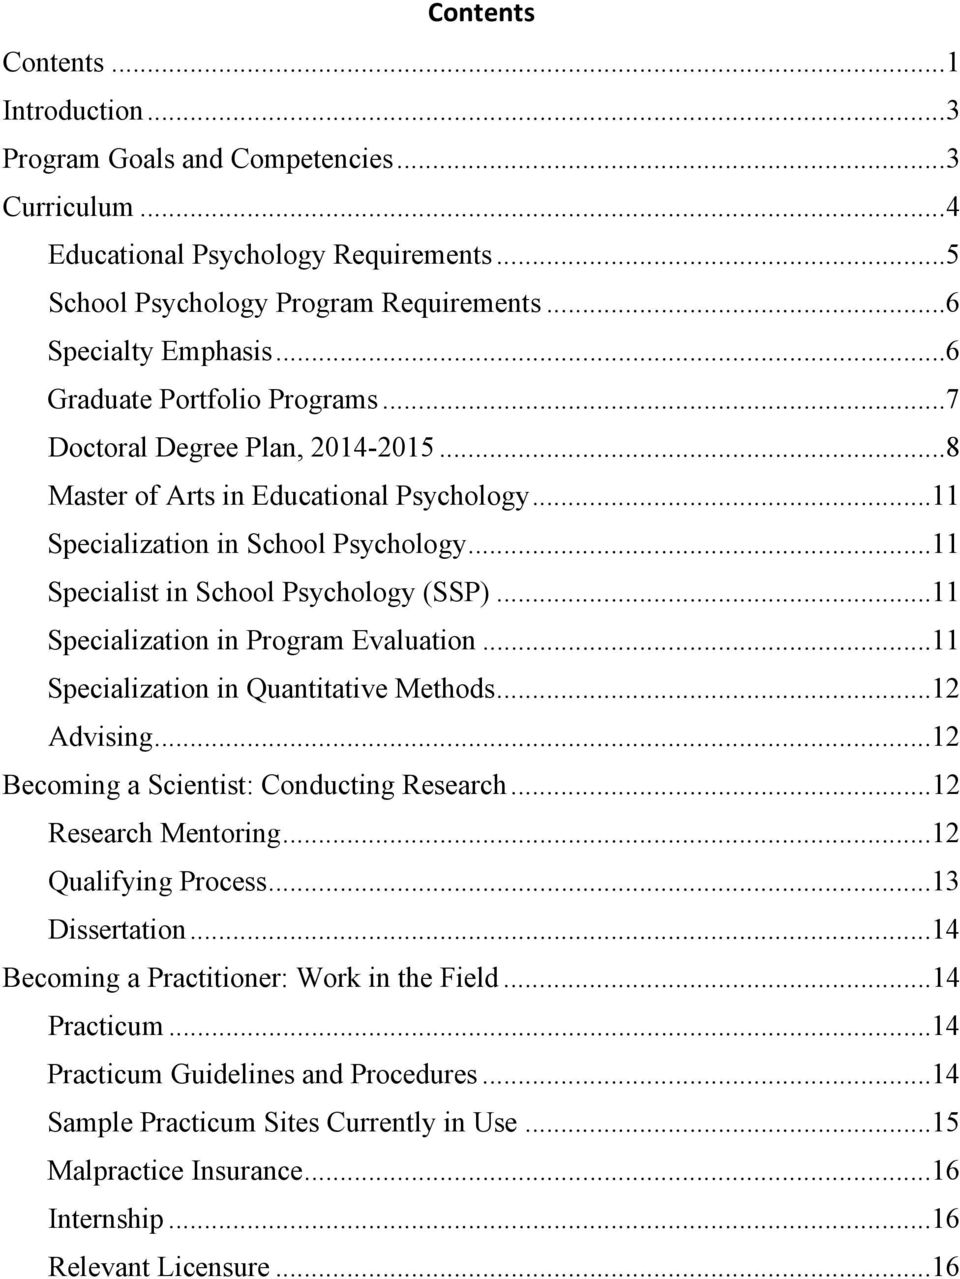 .. 11 Specialization in Program Evaluation... 11 Specialization in Quantitative Methods... 12 Advising... 12 Becoming a Scientist: Conducting Research... 12 Research Mentoring... 12 Qualifying Process.